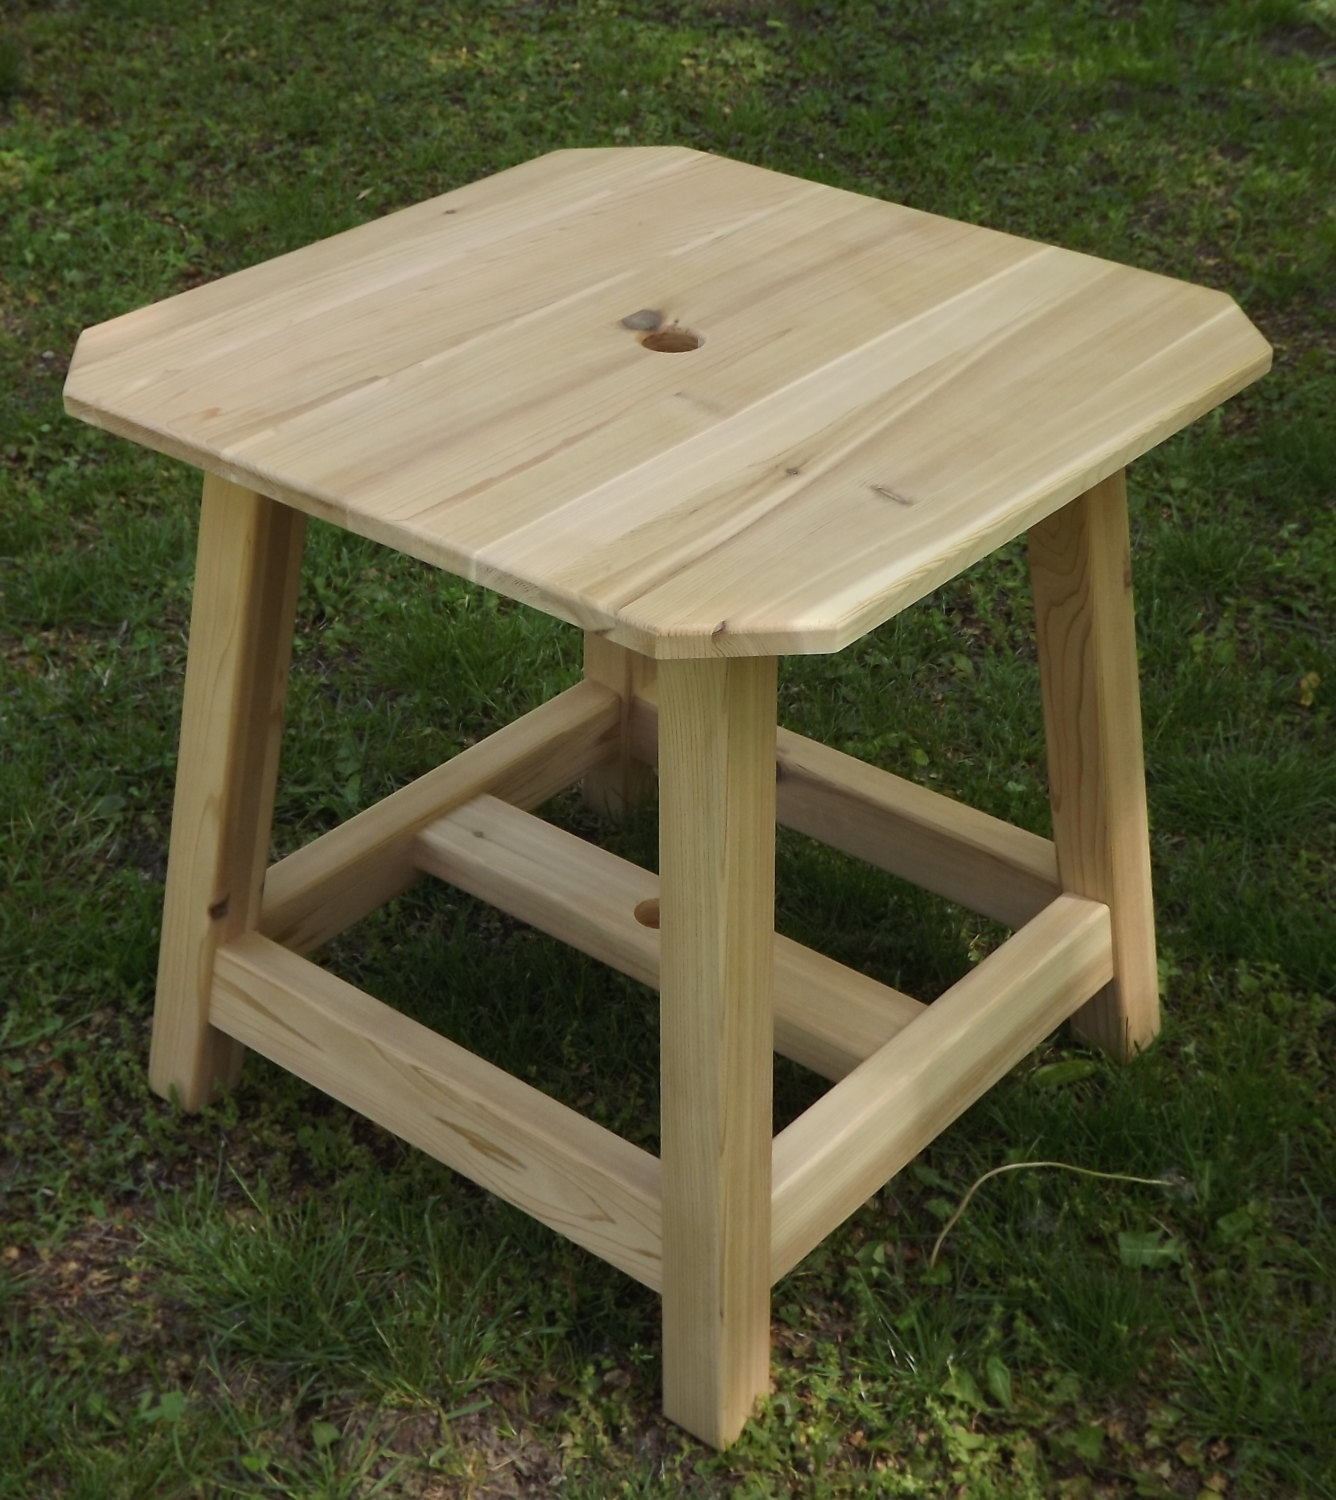 Most Popular Accessories: Cute Picture Of Furniture And Accessories For Lawn Throughout Patio Umbrella Stand Side Tables (View 18 of 20)